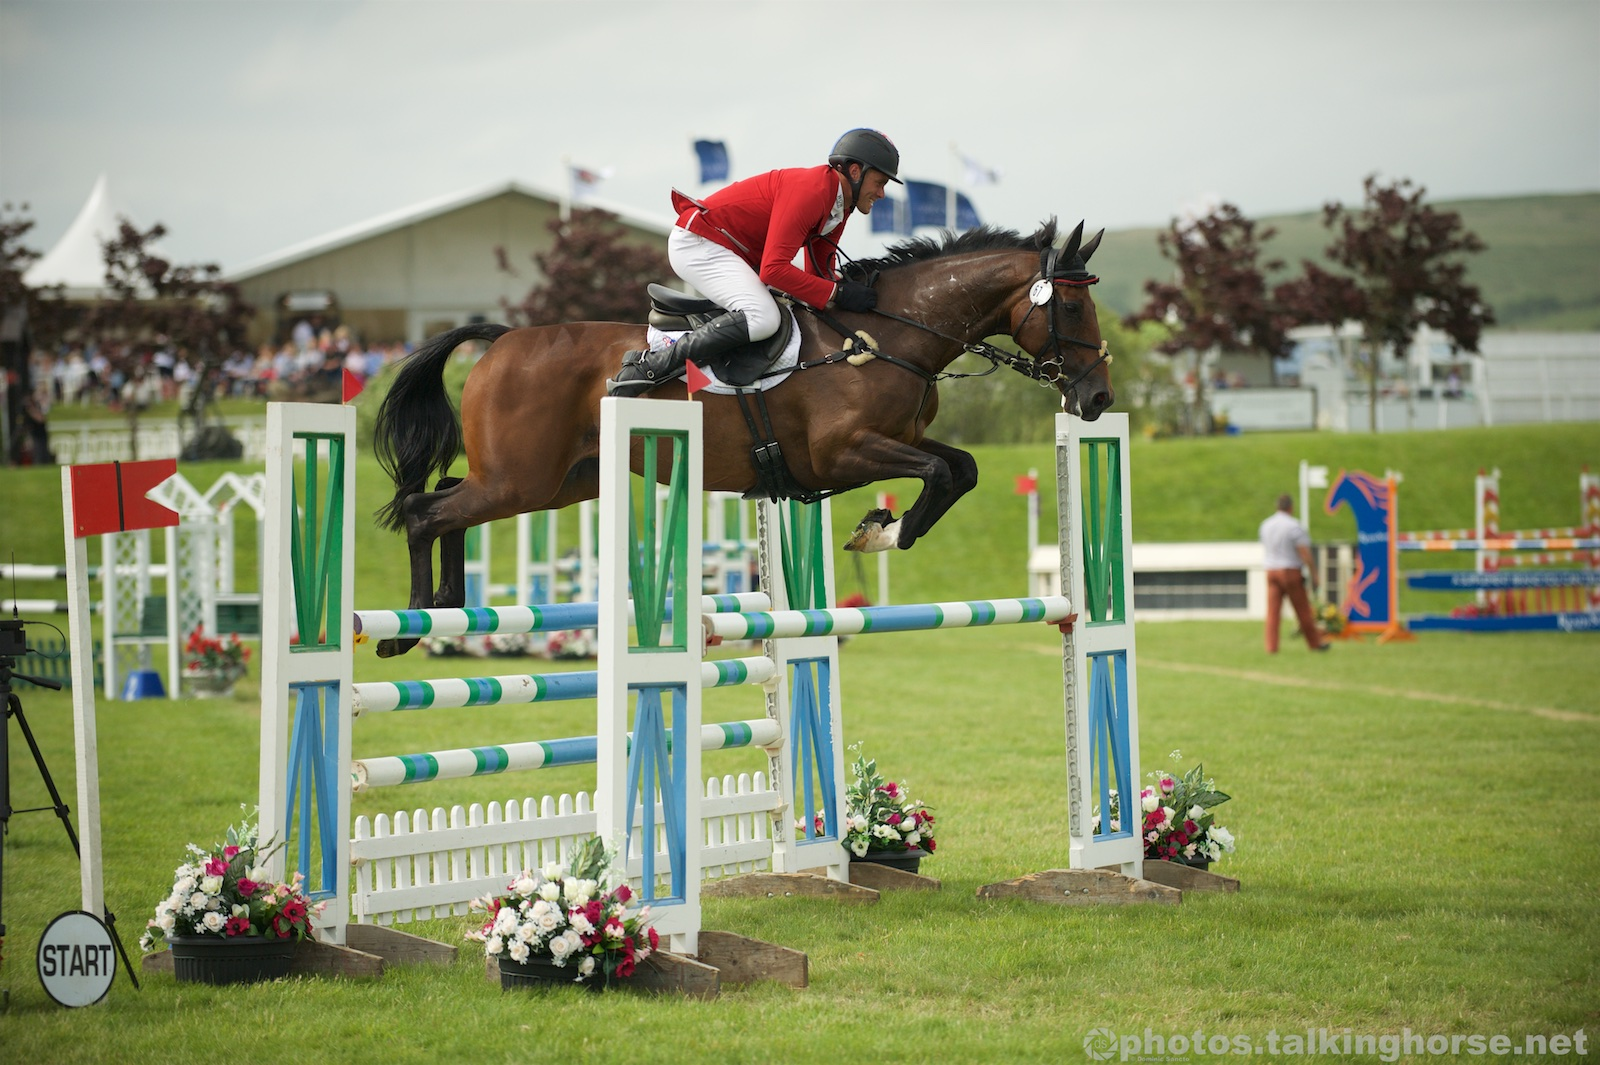 Paul Tapner & VANIR KAMIRA Showjump Clear In The CIC***